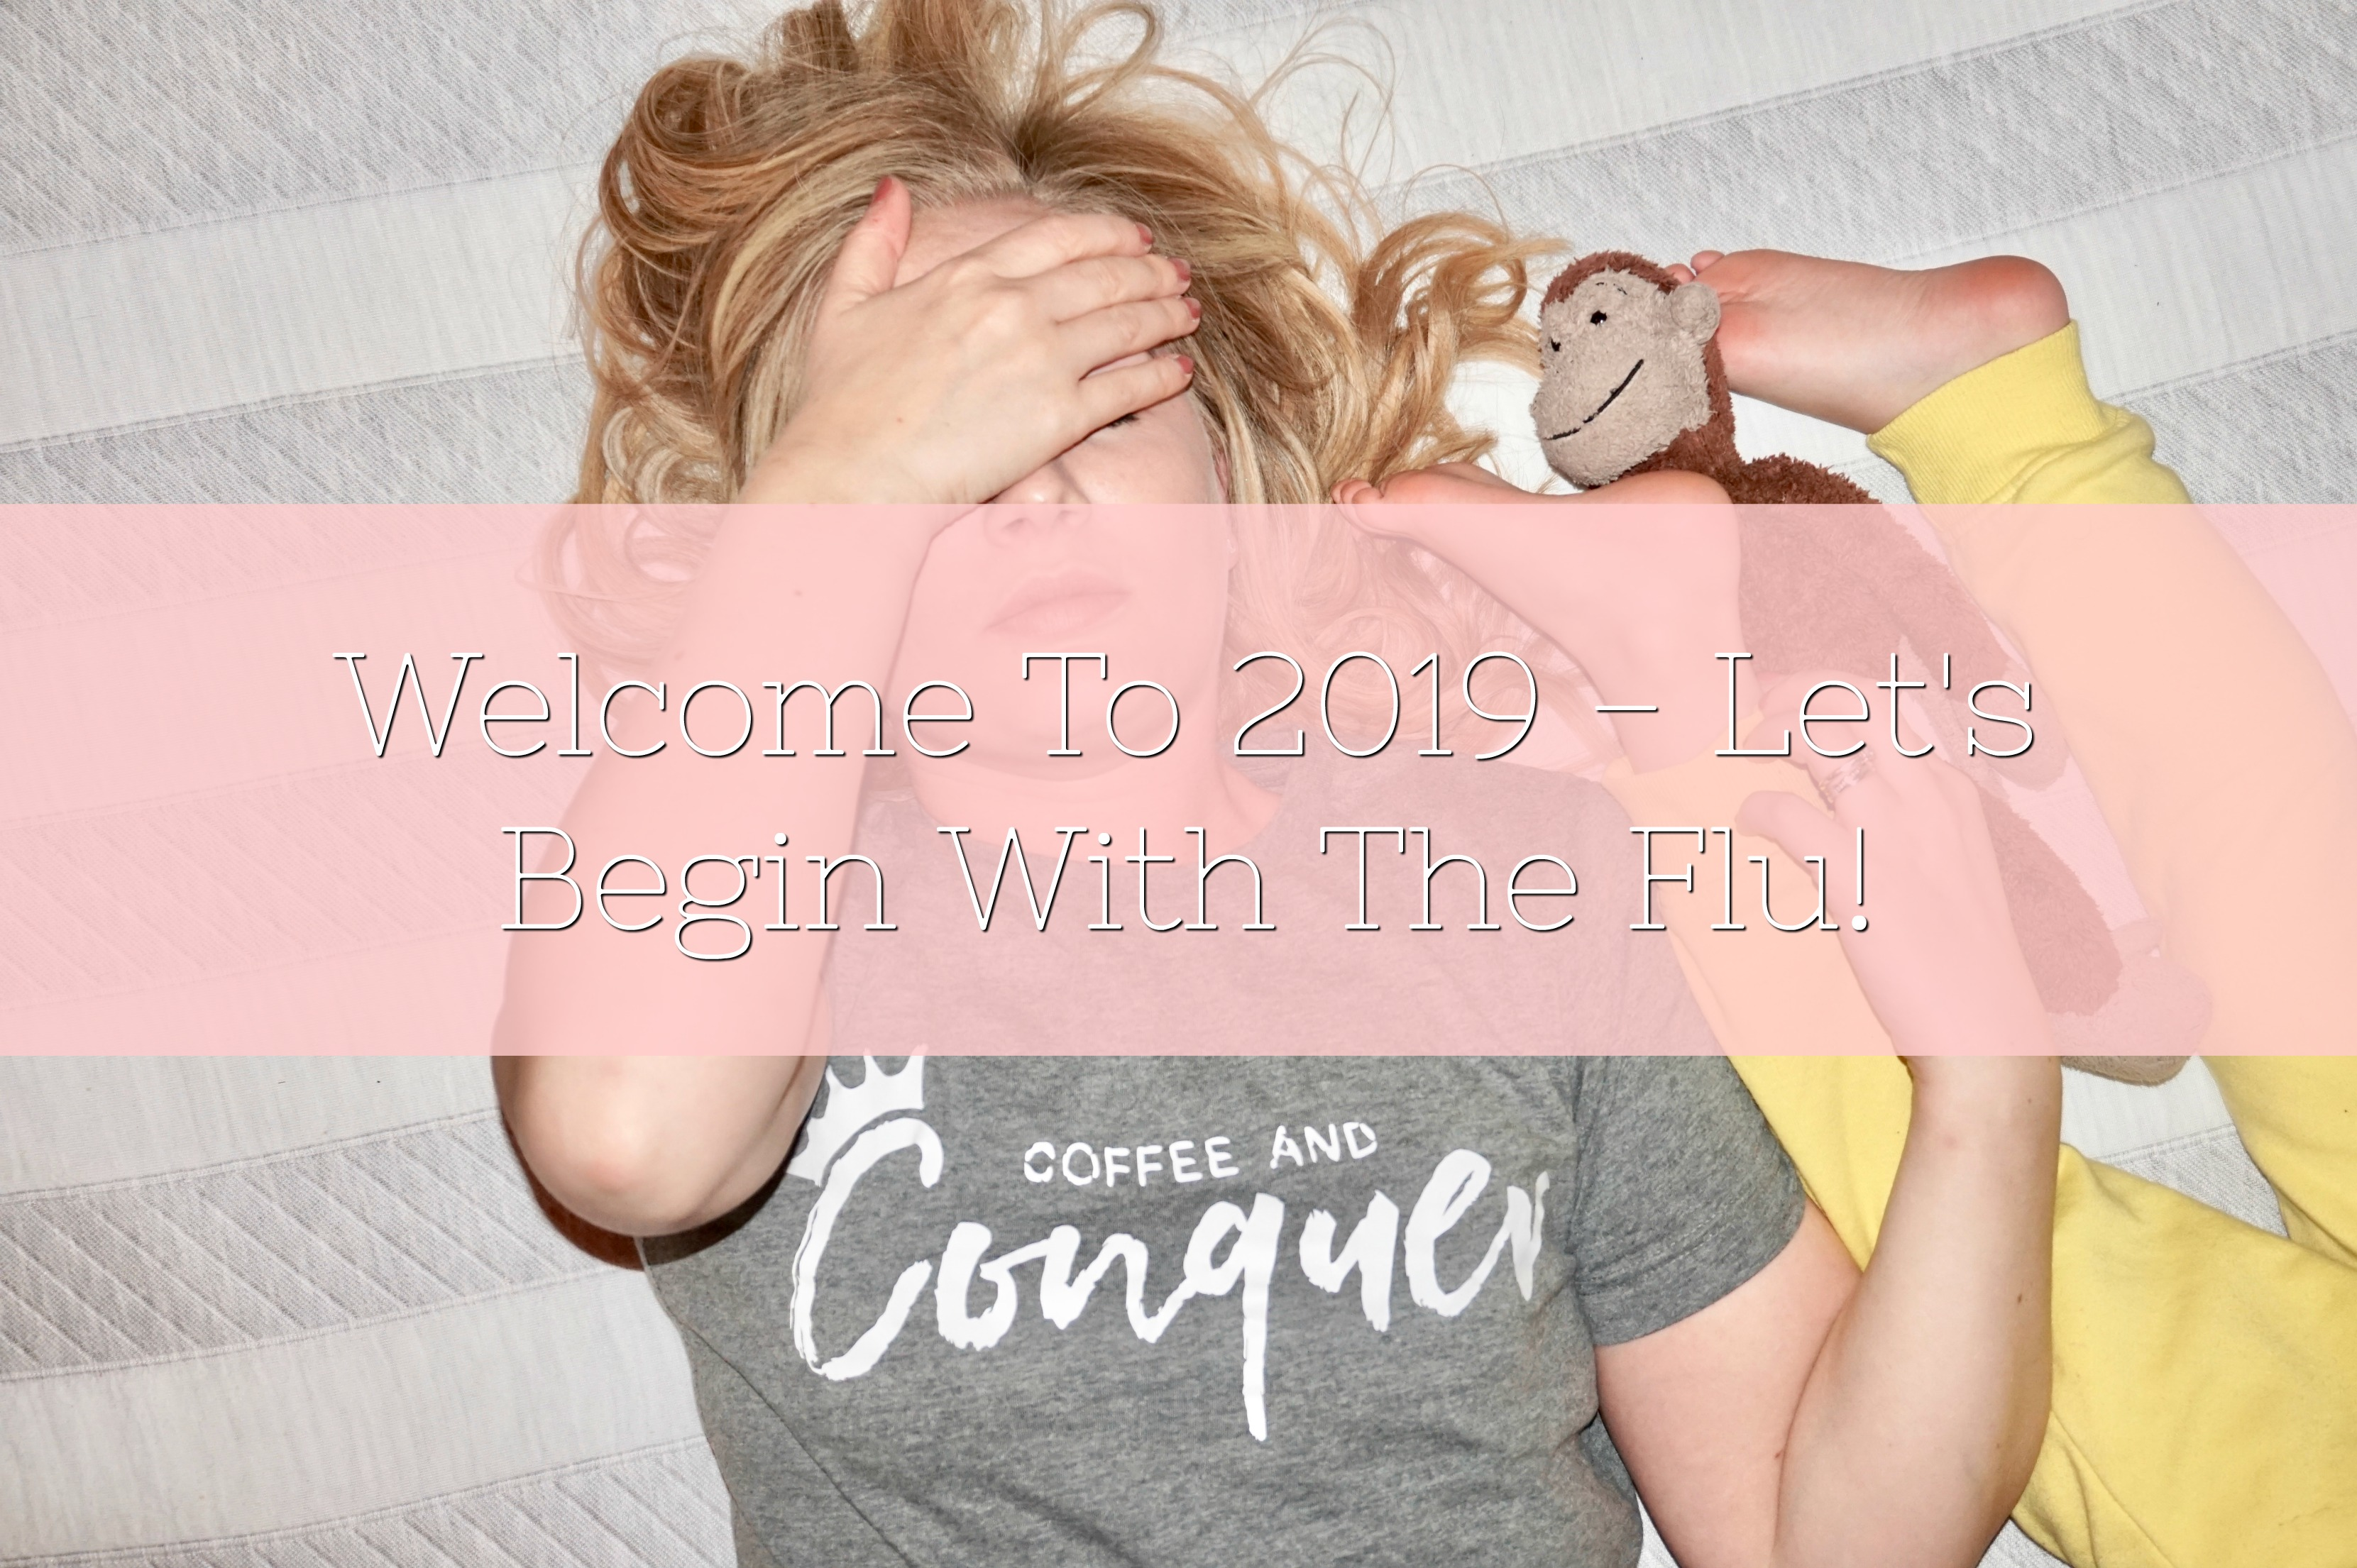 Welcome To 2019 - Let's Begin With The Flu!